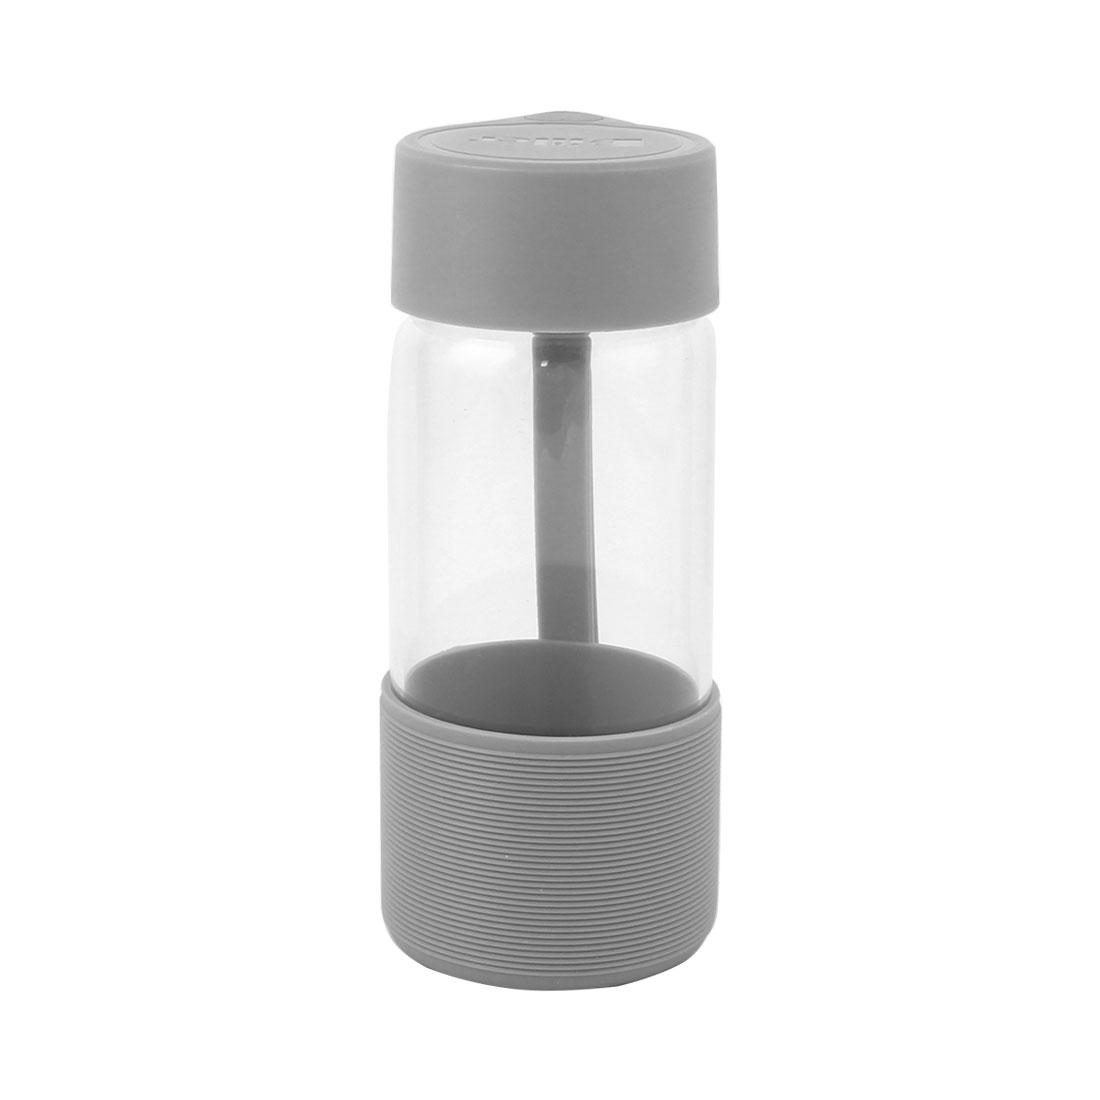 Student Travelling Camping Cup Portable Glass Water Bottle Mug Gray 300ml